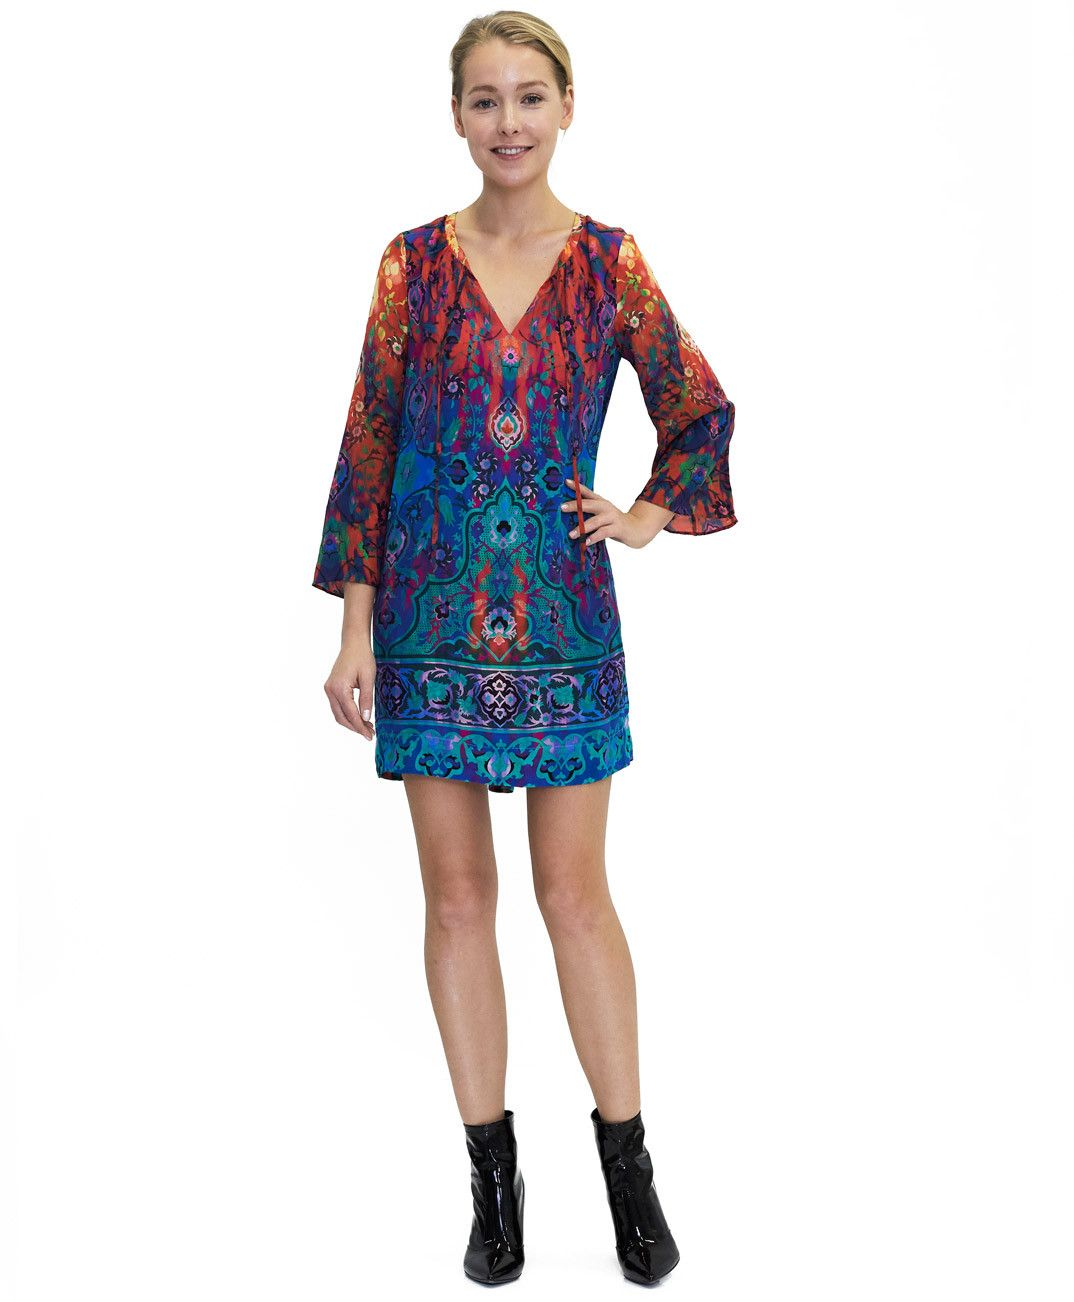 Tangerine NYC women's silk Selena V-Neck dress in blue and red print best seller